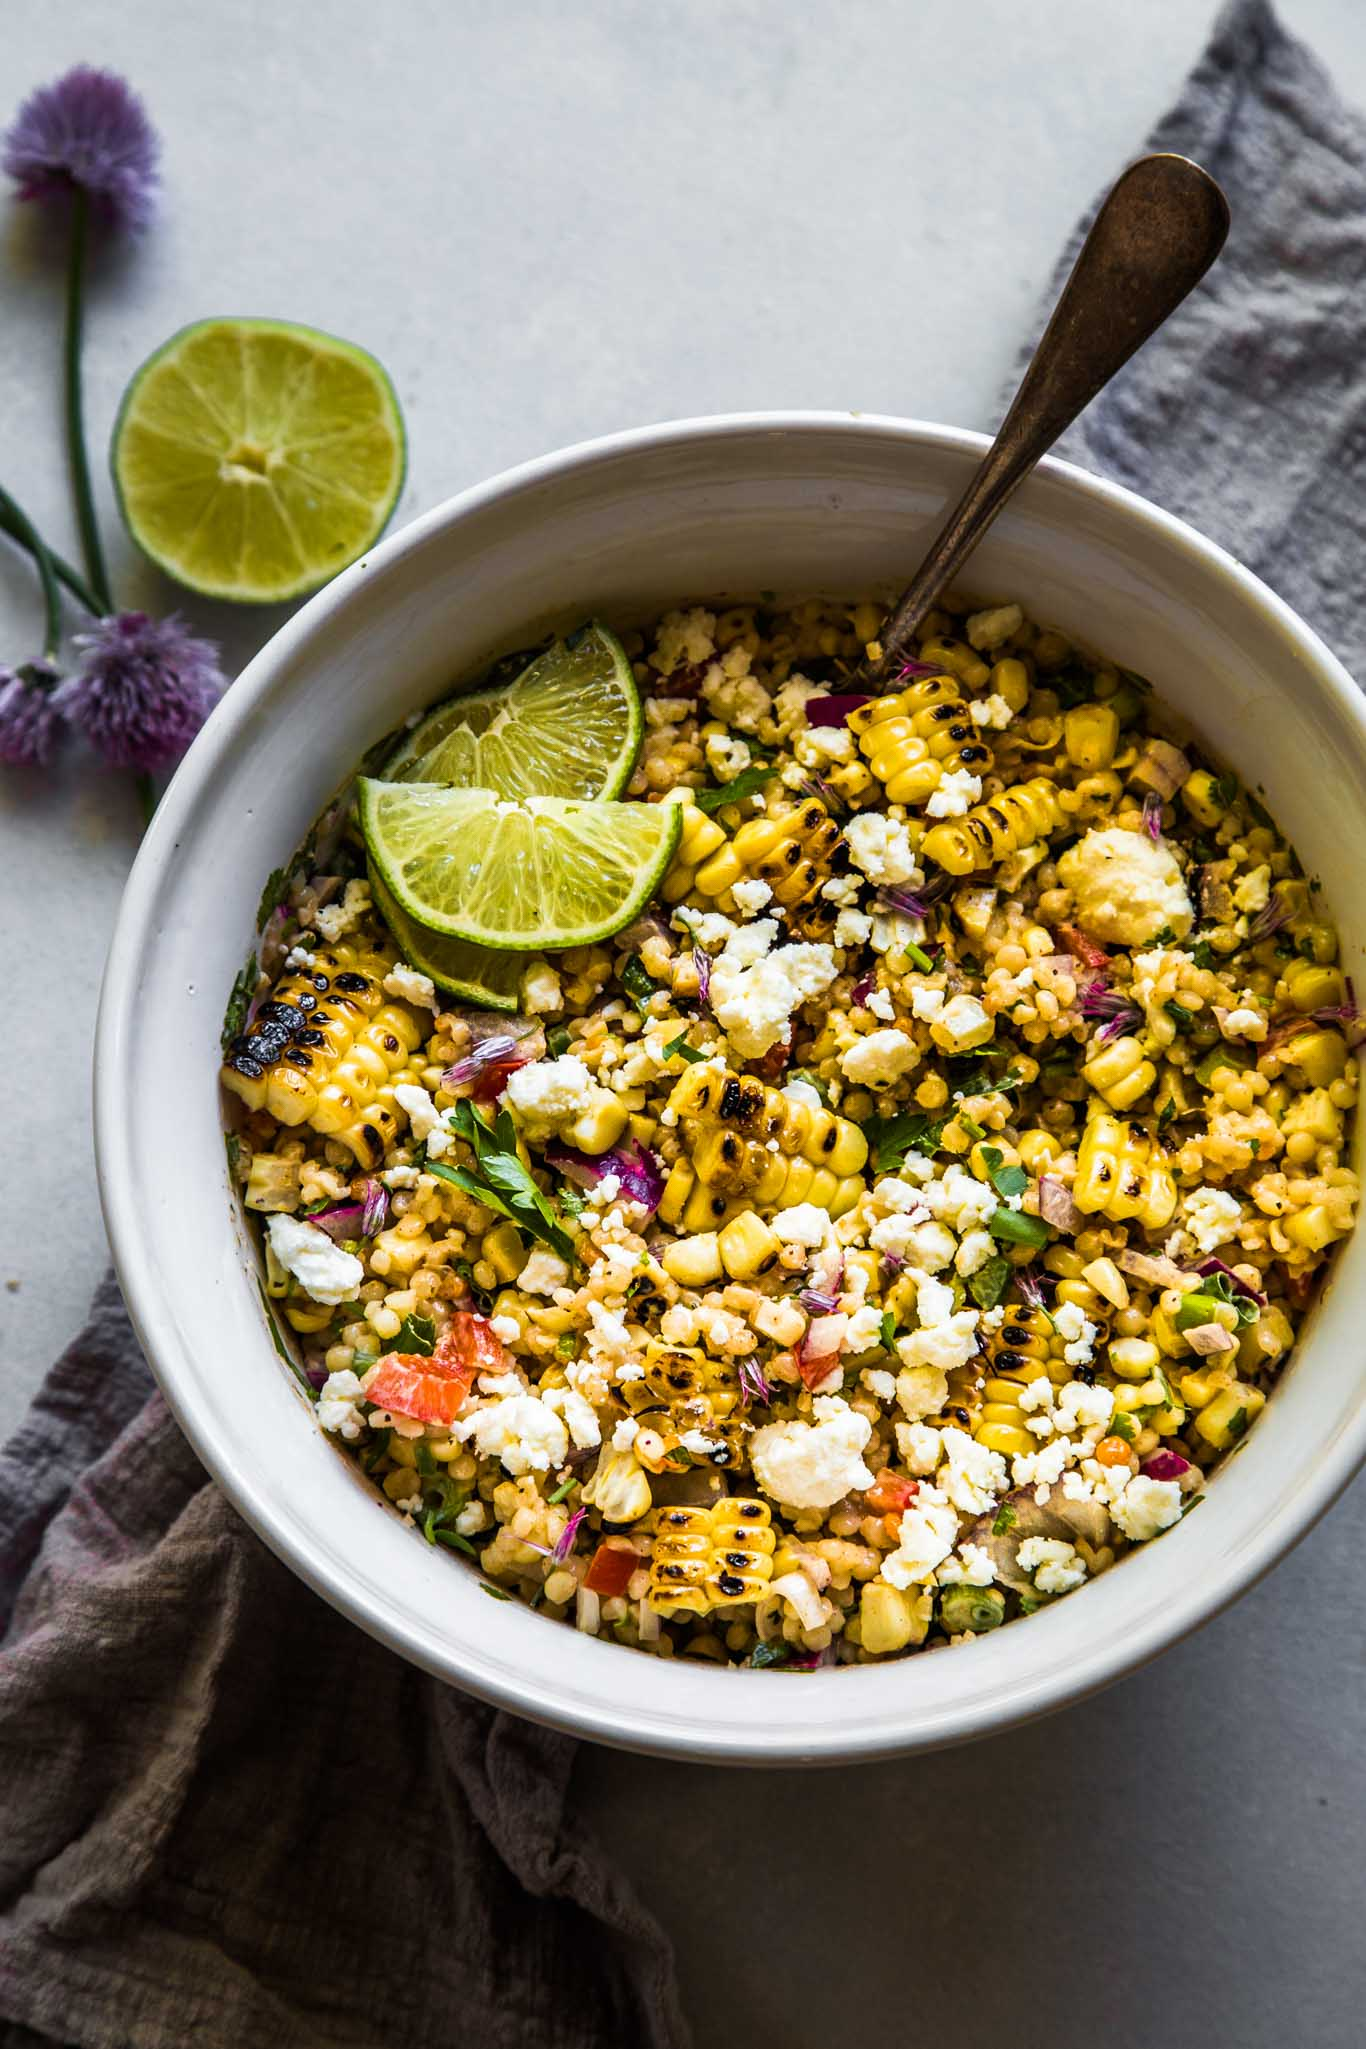 Bowl of Mexican Street Corn Salad next to lime and blooming chives